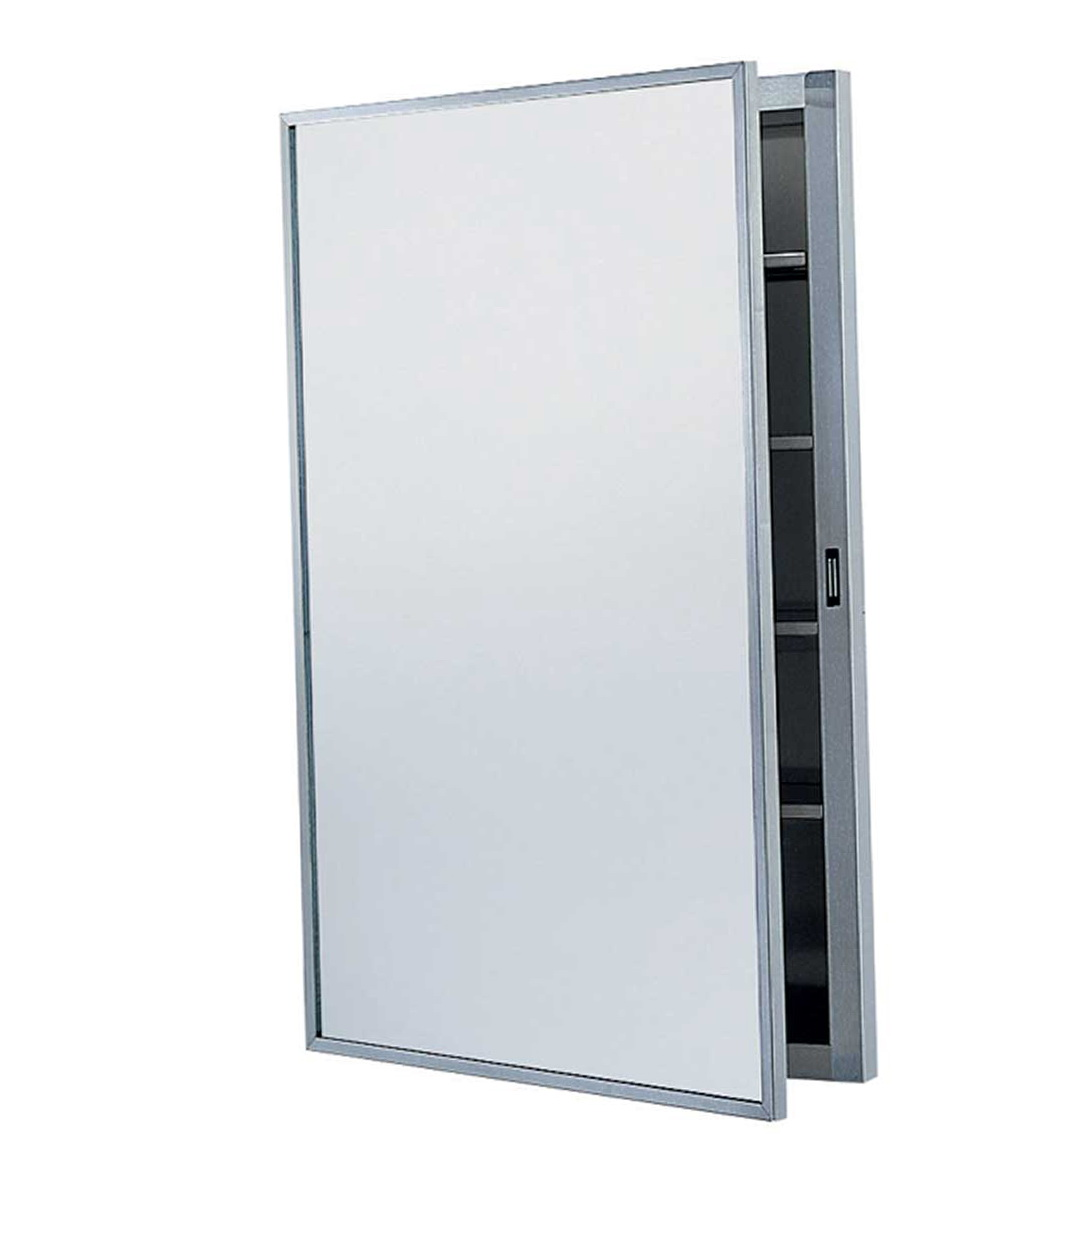 Recessed Medicine Cabinets Lowes